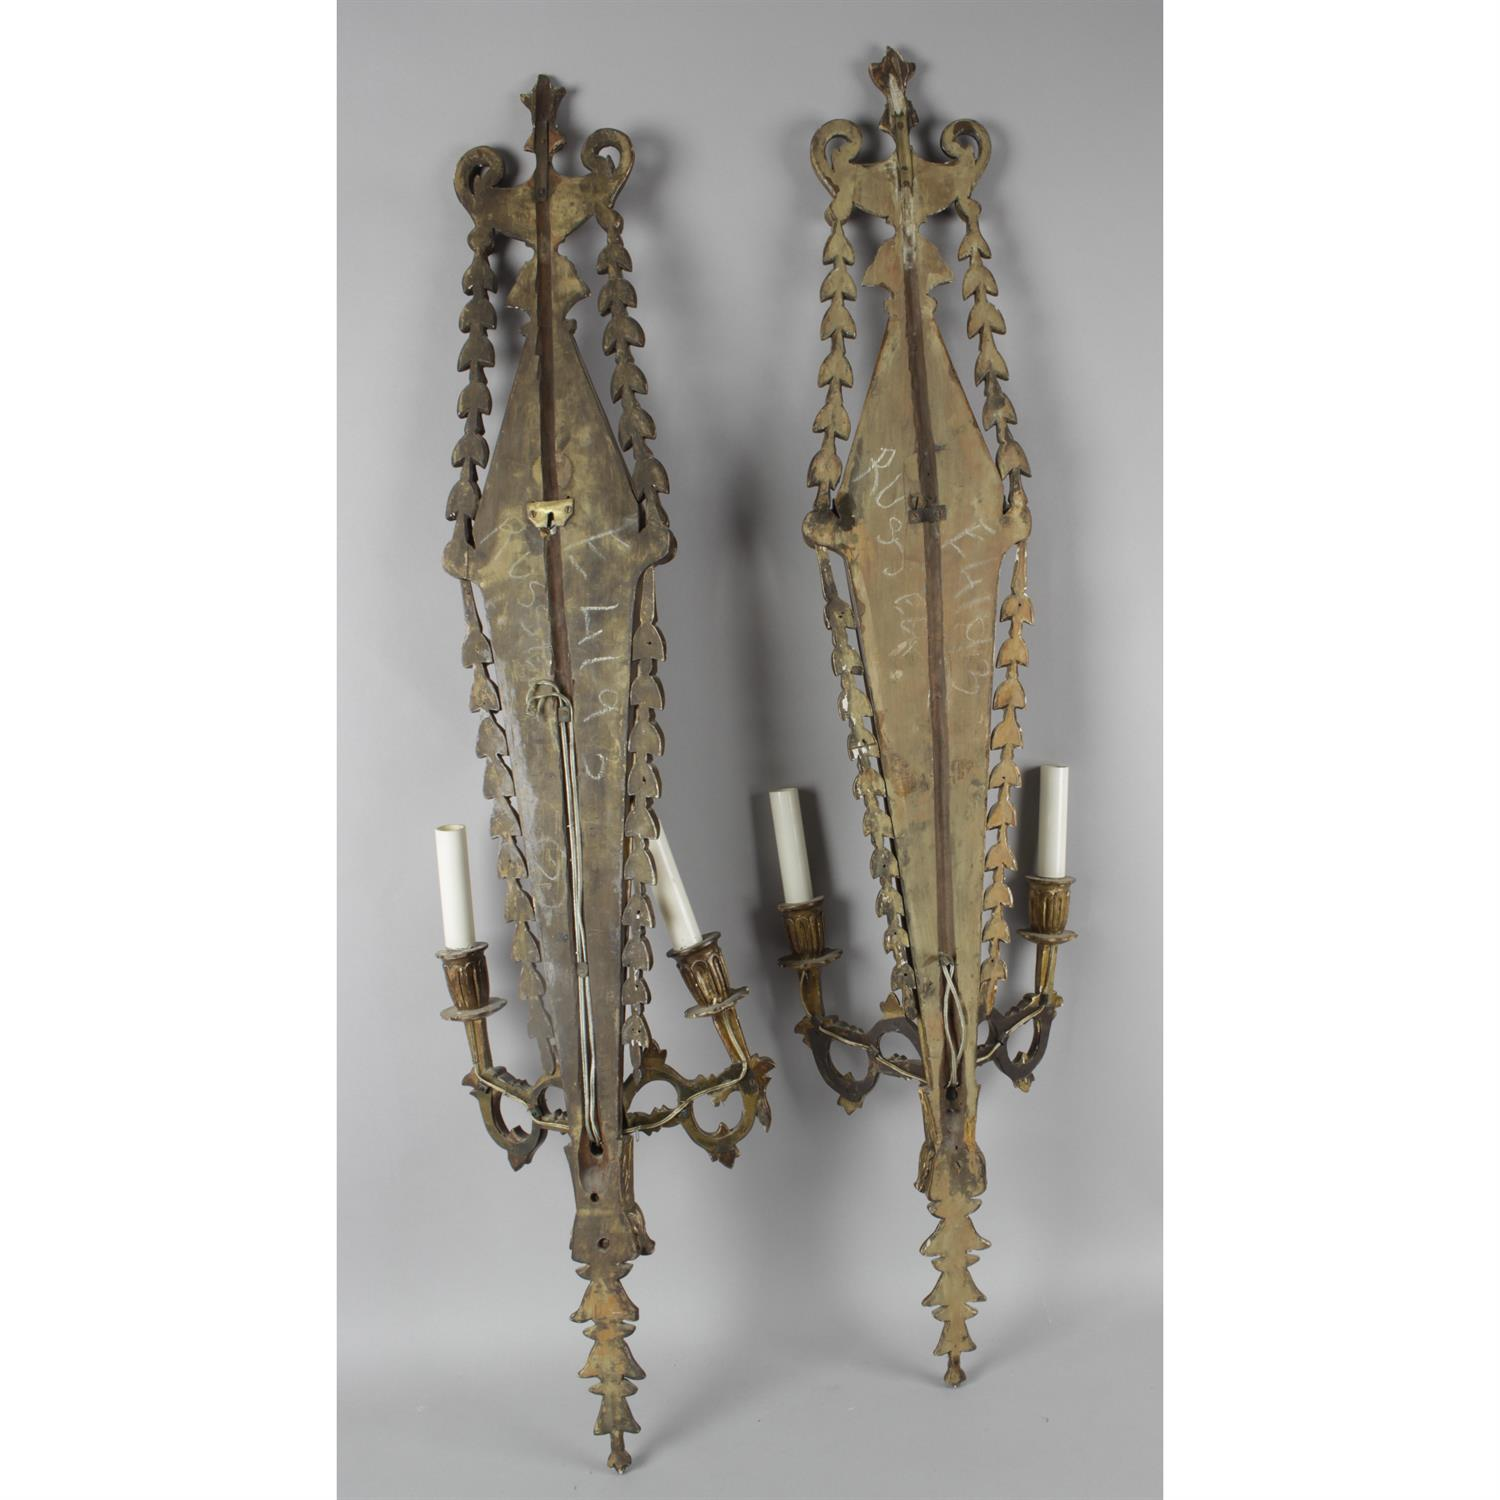 A pair of Giltwood Adam style twin branch wall lights - Image 2 of 3